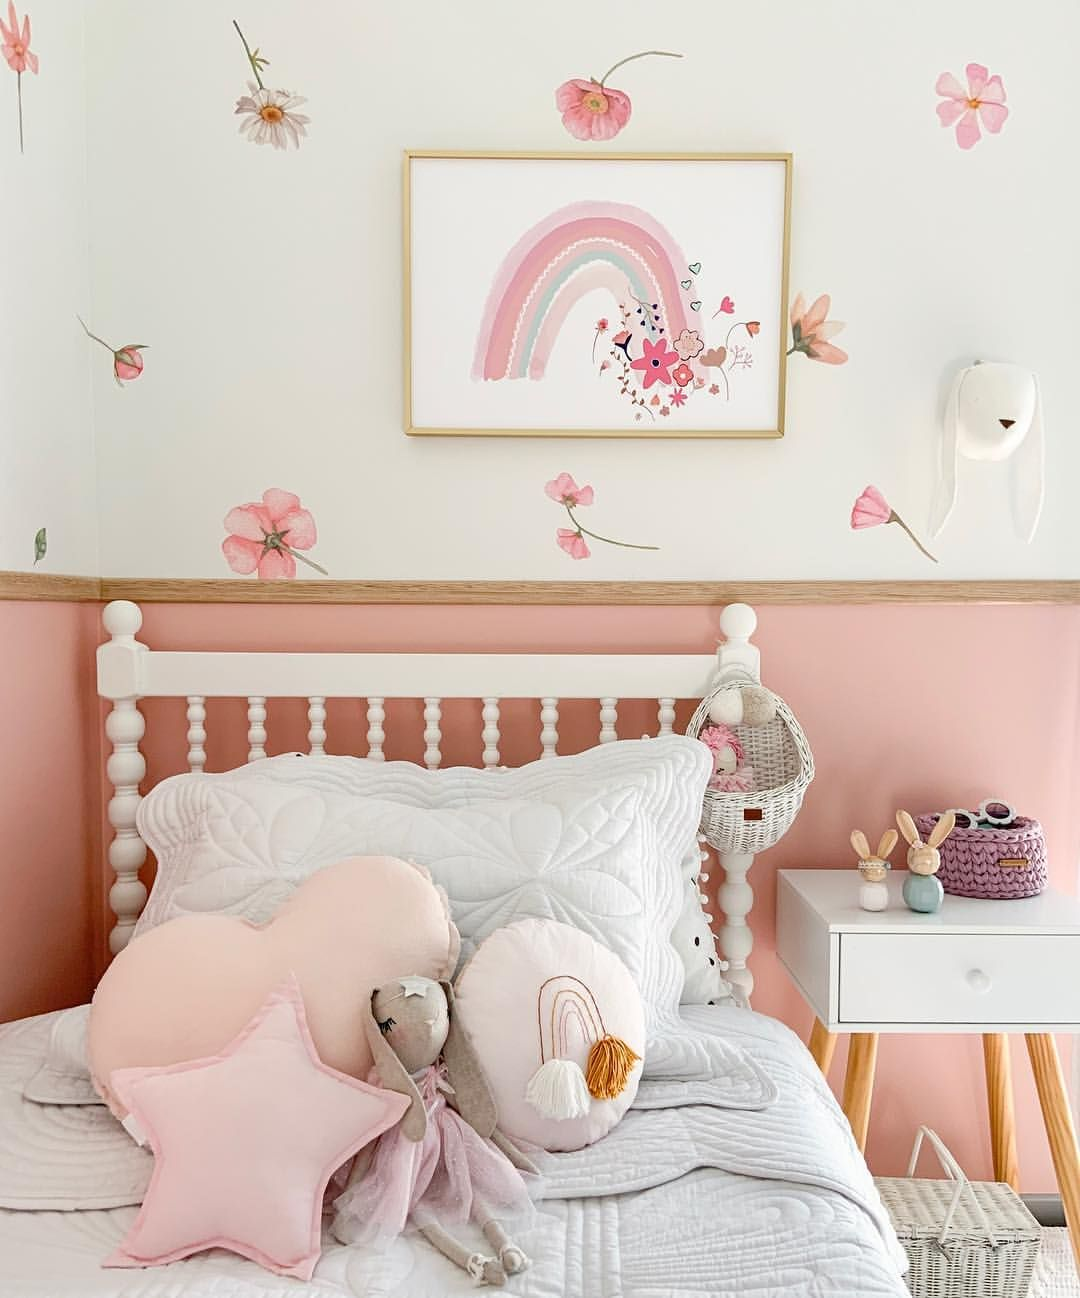 Girls Bedroom These Sailah Lane Flower Wall Decals Are Removable And Reusable Rainbow Print By Sailah Scandinavian Kids Rooms Rainbow Promise Childrens Decor